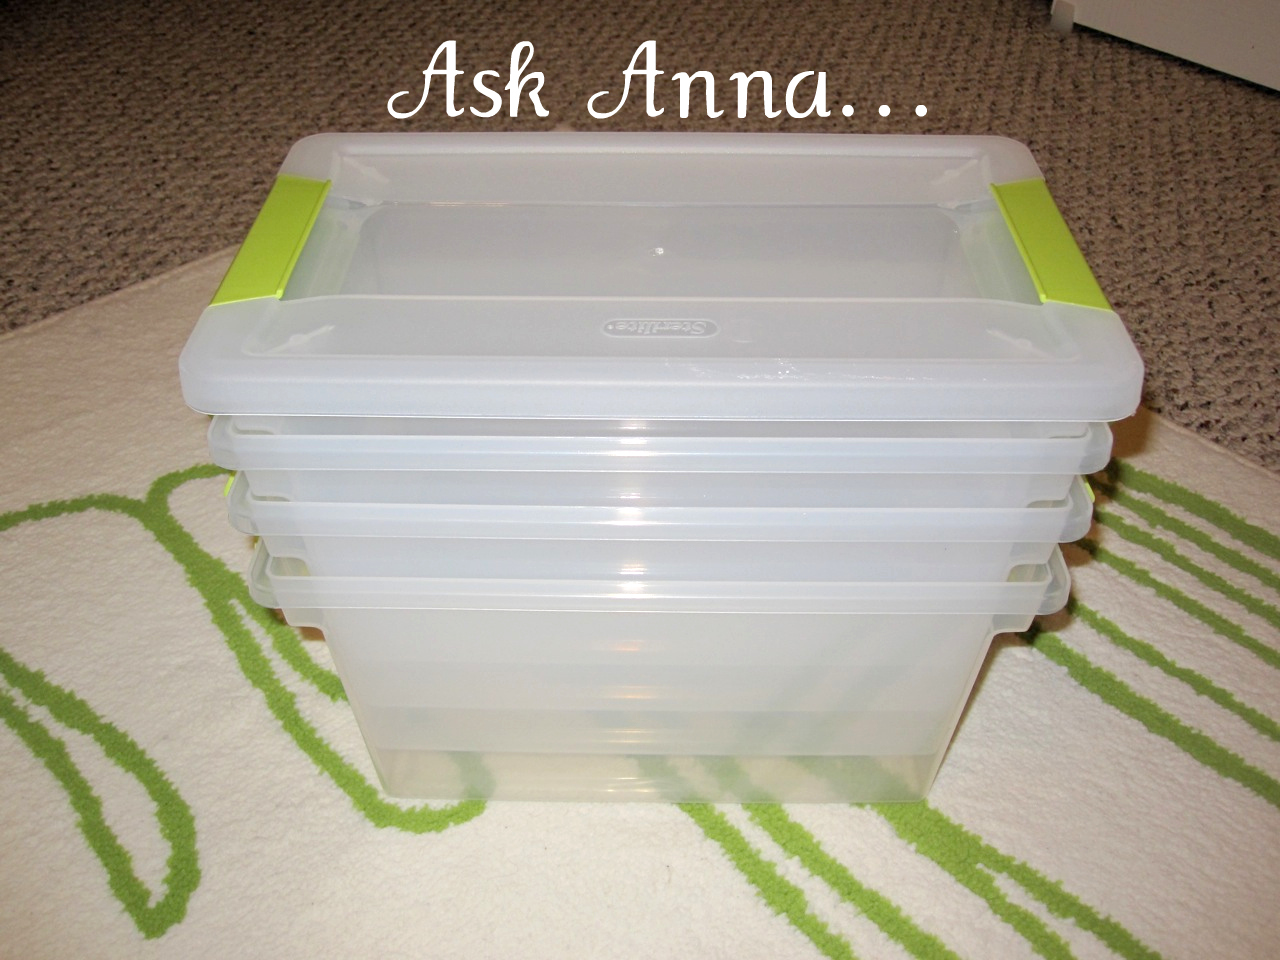 The Easiest way to Organize Medicine Bottles - Ask Anna